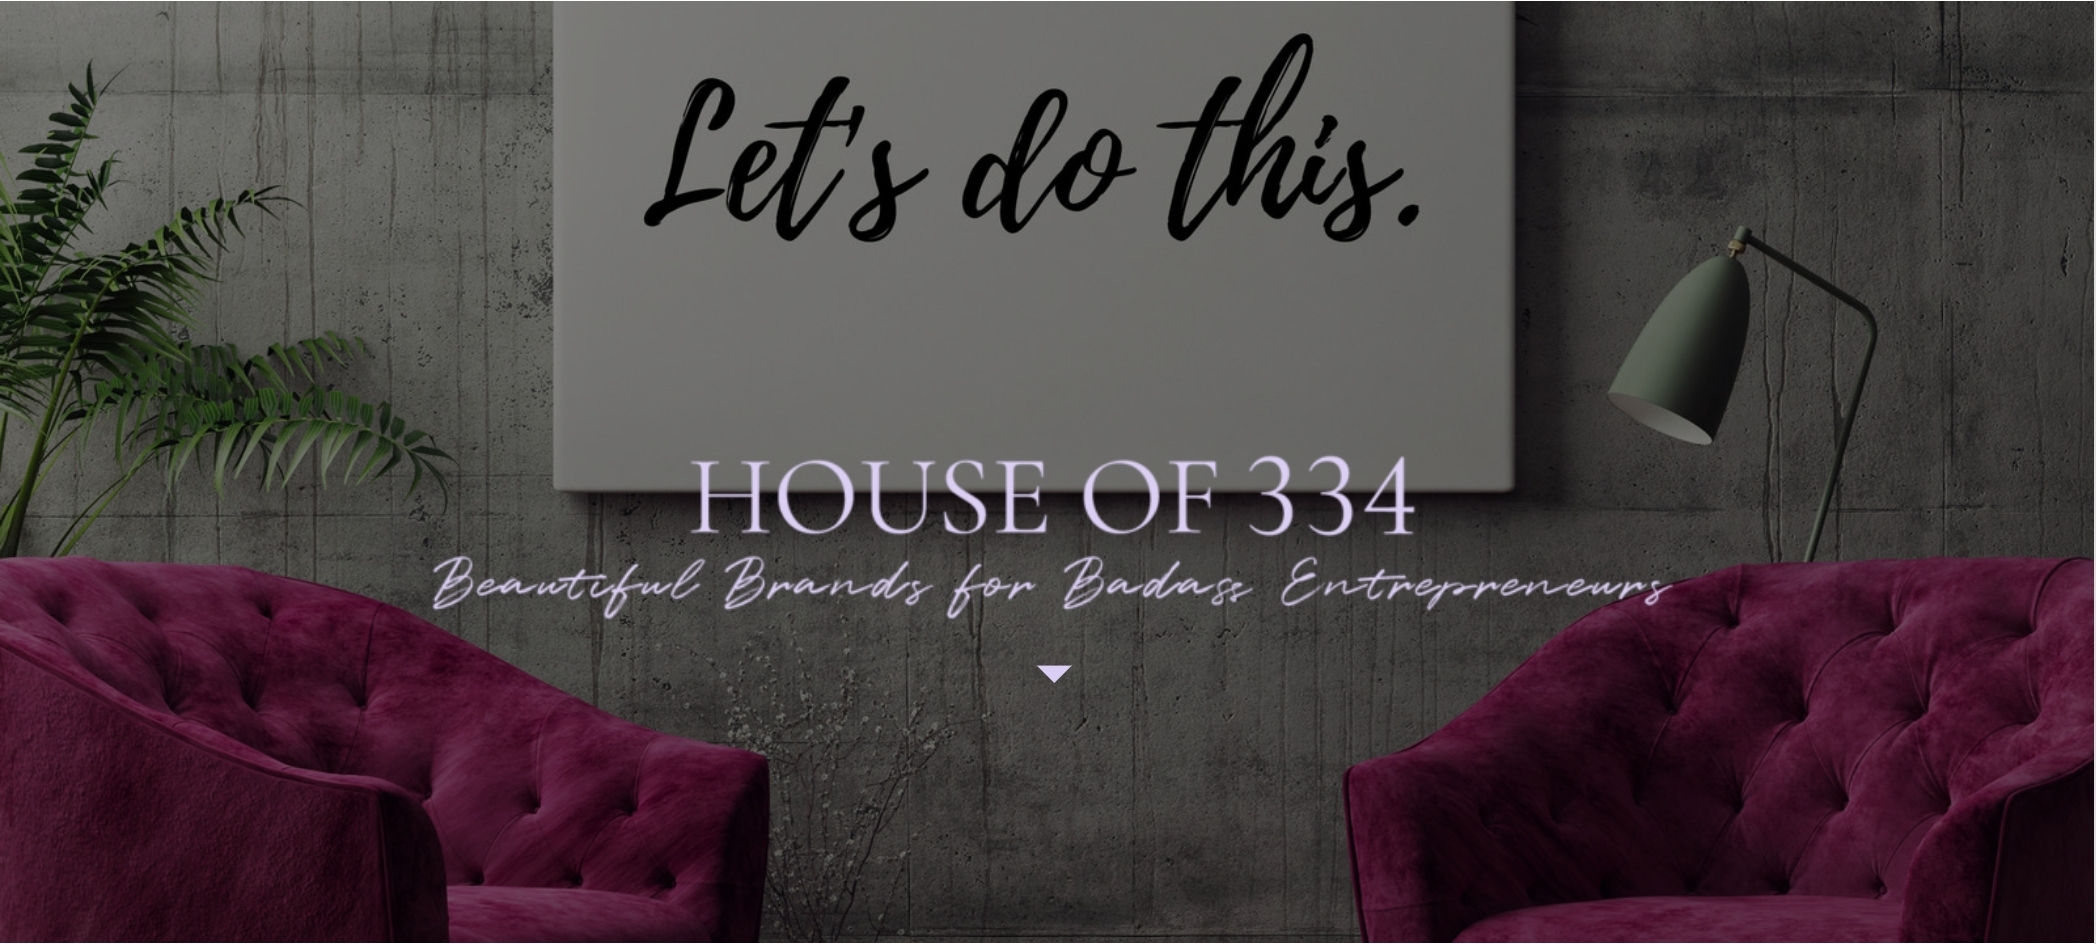 House of 334 Brand Page